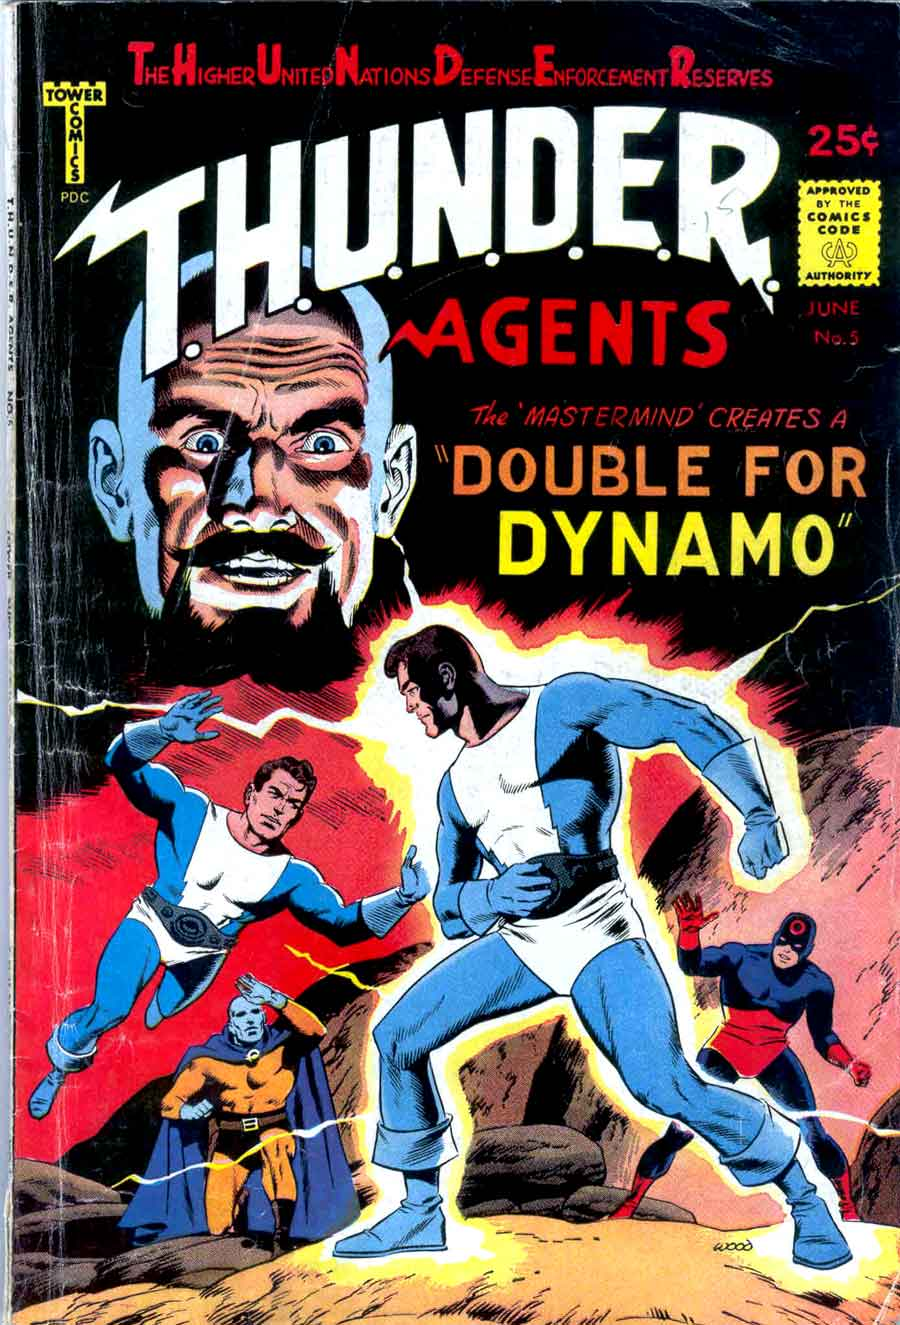 Thunder Agents v1 #5 tower silver age 1960s comic book cover art by Wally Wood